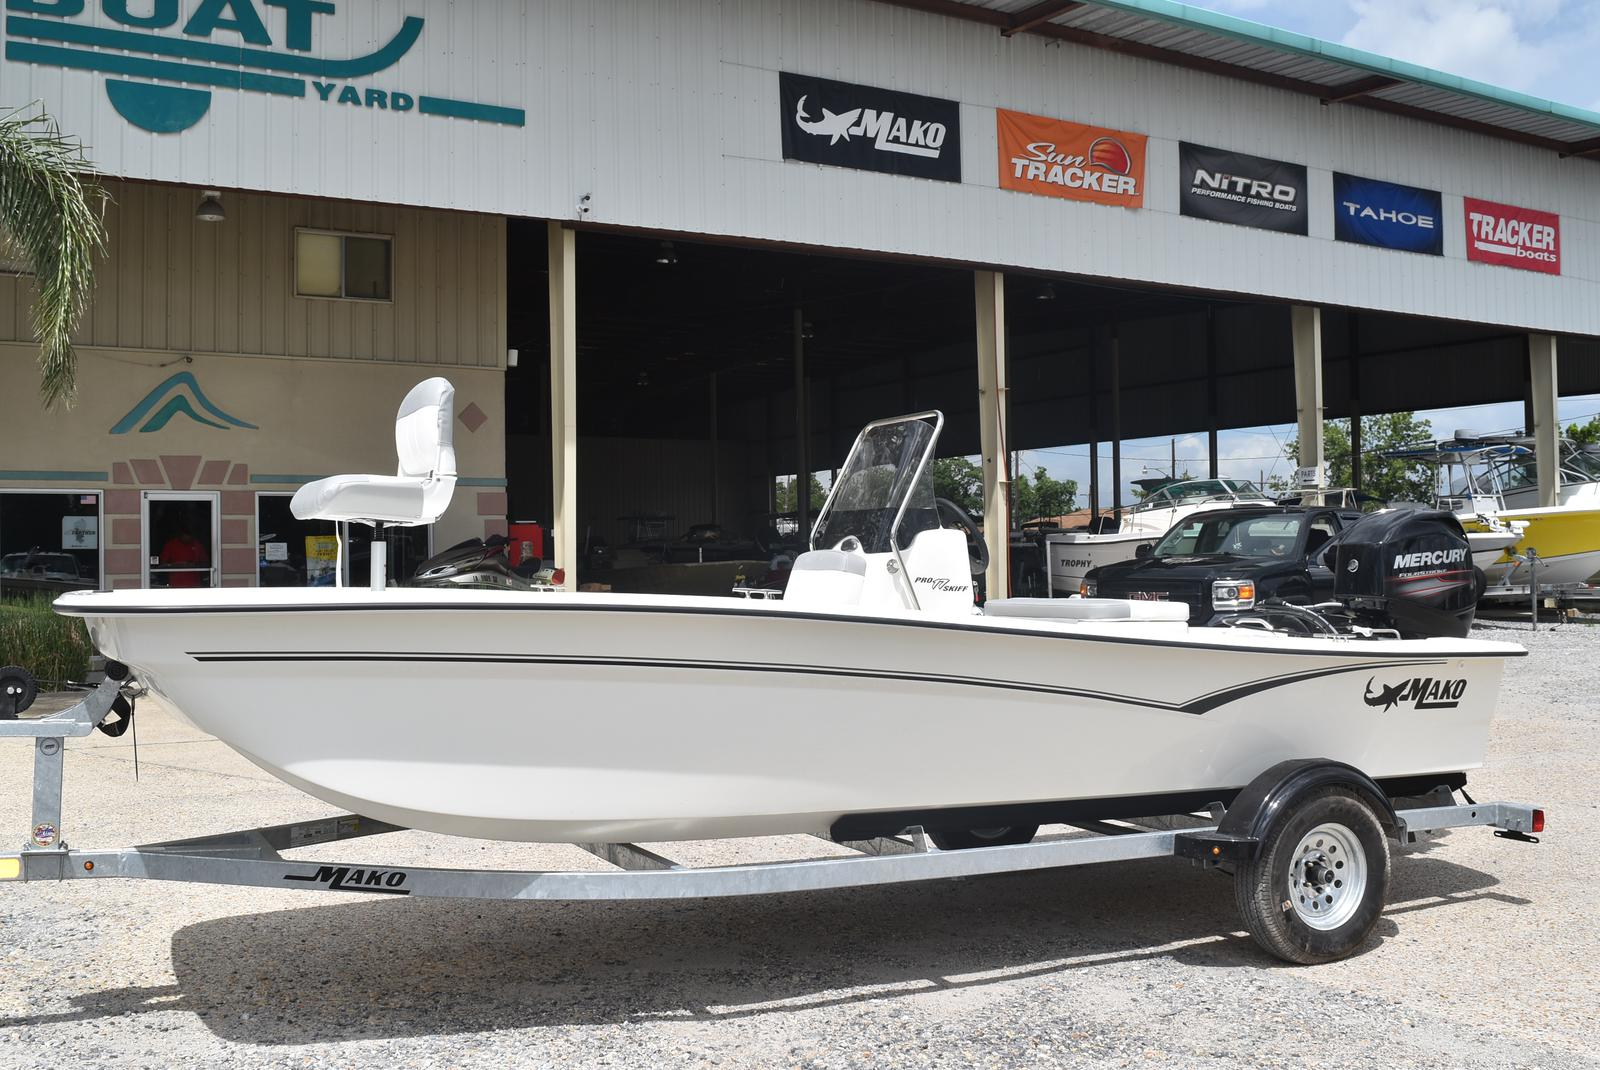 2020 Mako boat for sale, model of the boat is Pro Skiff 17, 75 ELPT & Image # 138 of 702